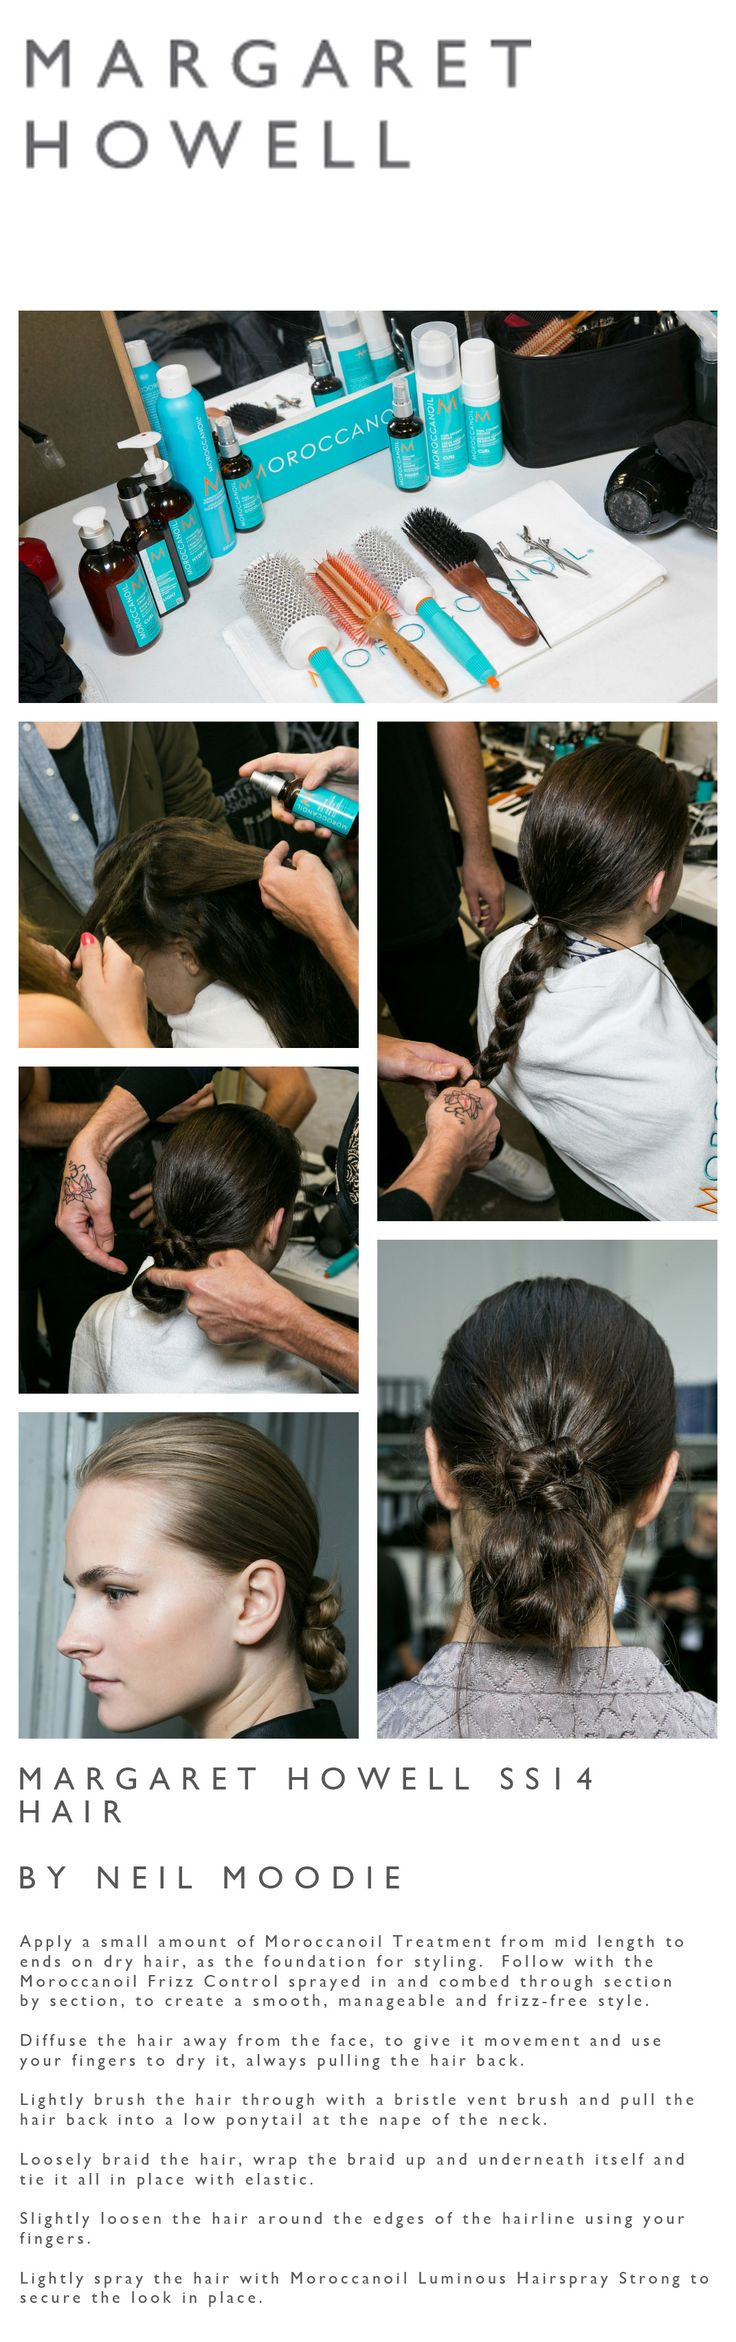 How to do a braided bun hairstyle using Moroccanoil products - seen at Margaret Howell SS14